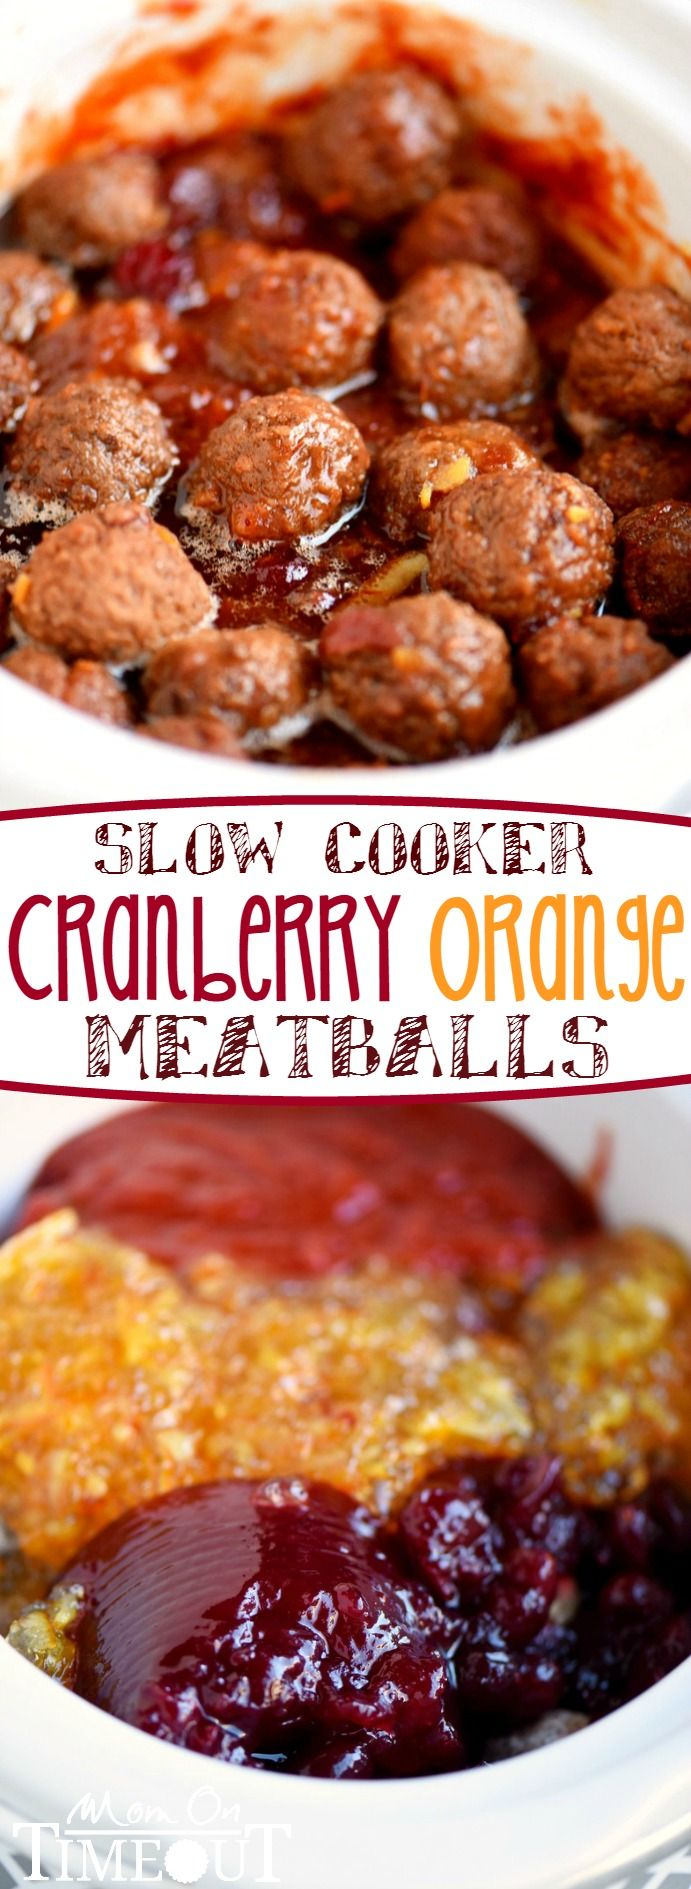 An impressive yet delightfully simple appetizer that is perfect for any celebration - Slow Cooker Cranberry Orange Meatballs! Just five ingredients and tons of delicious flavor!: